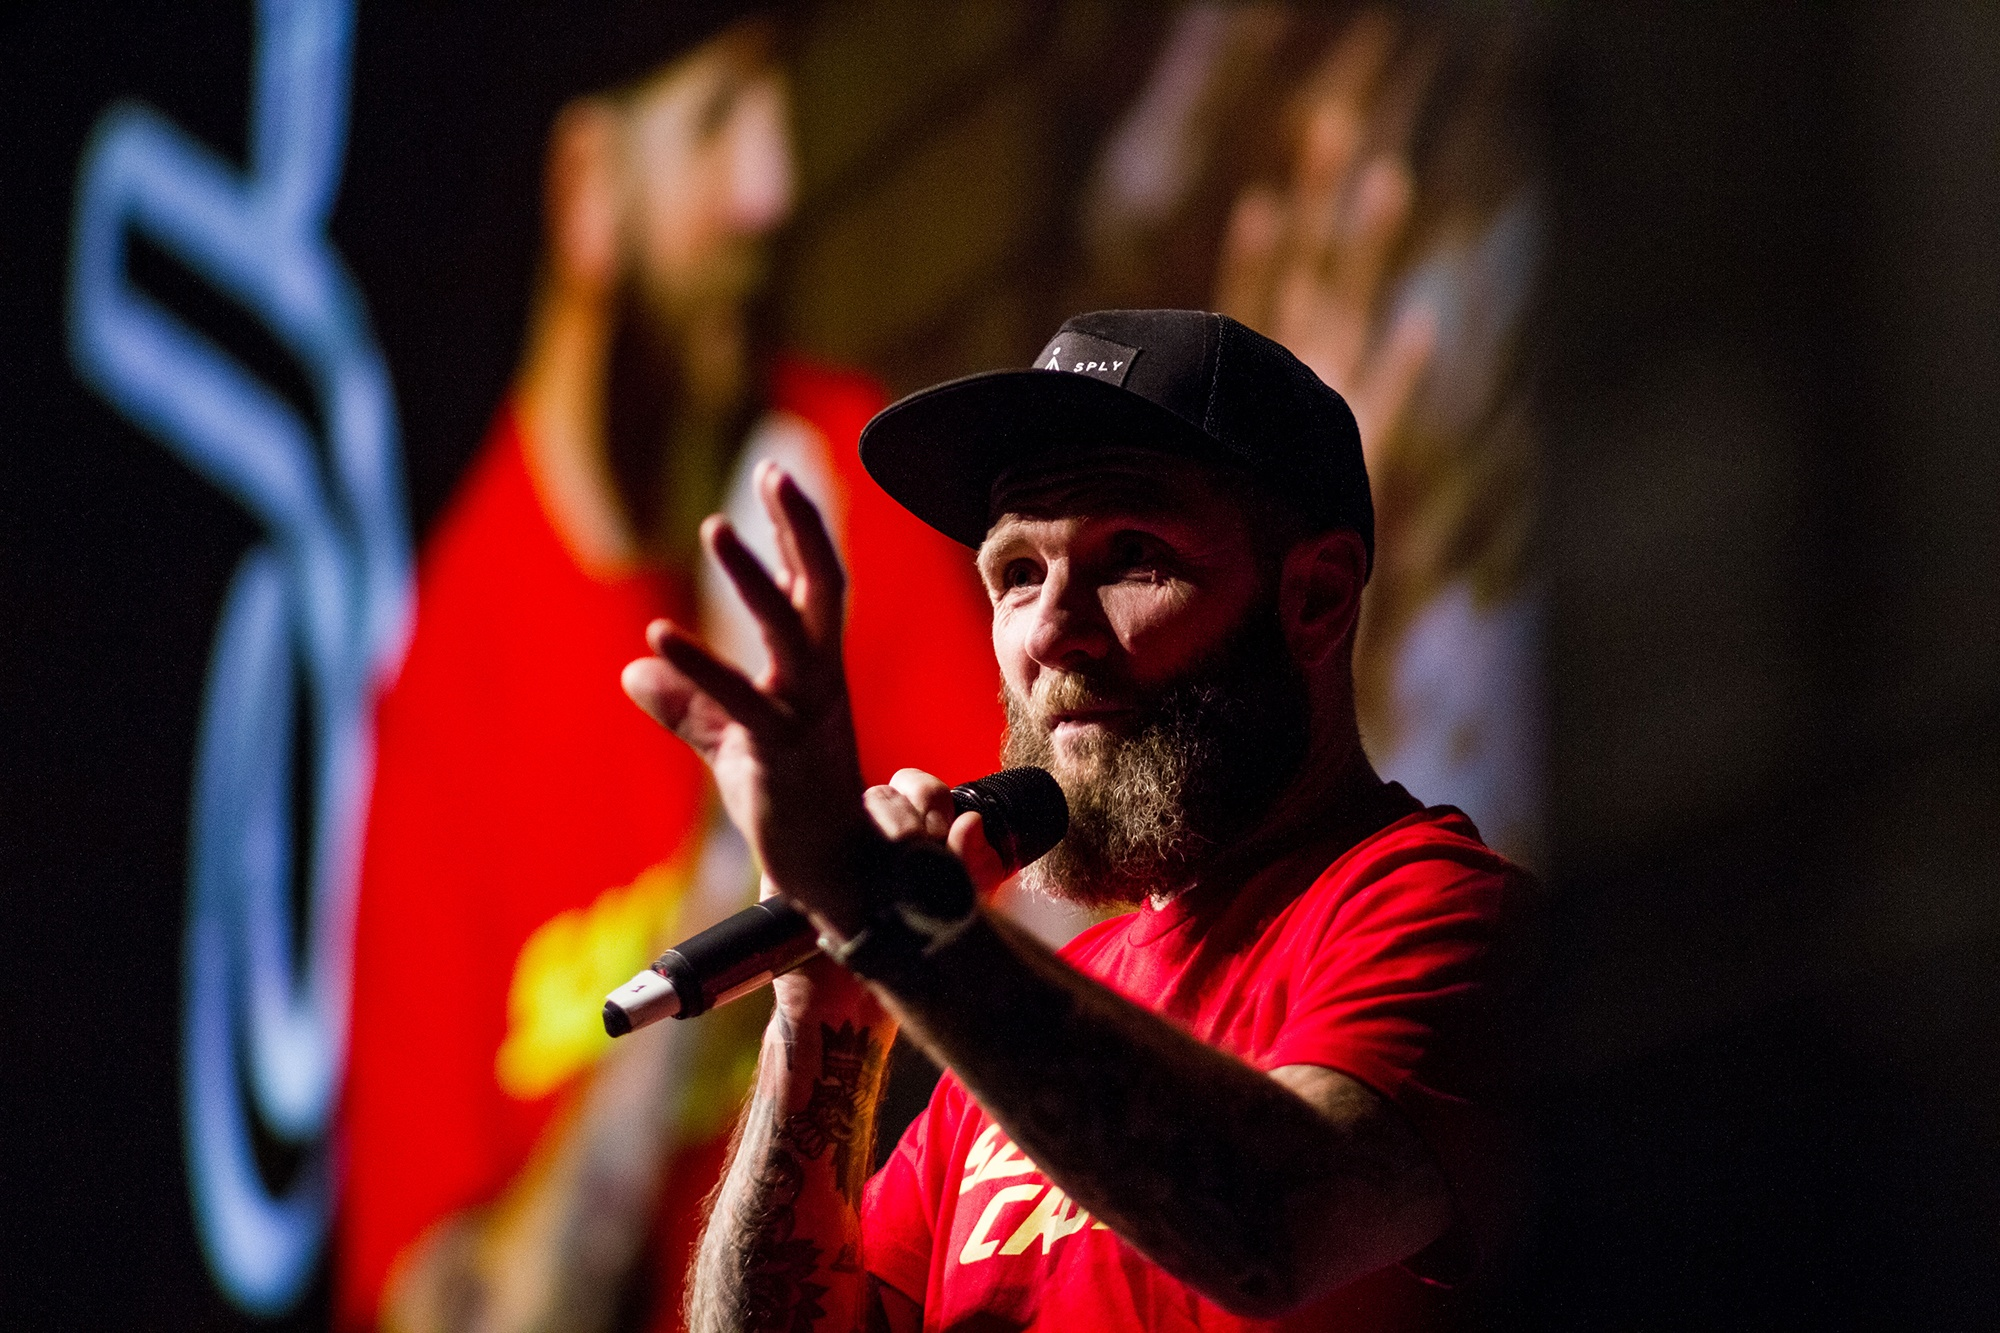 Ed Oxley at Bike Night at Kendal Mountain Festival by Jessie Leong